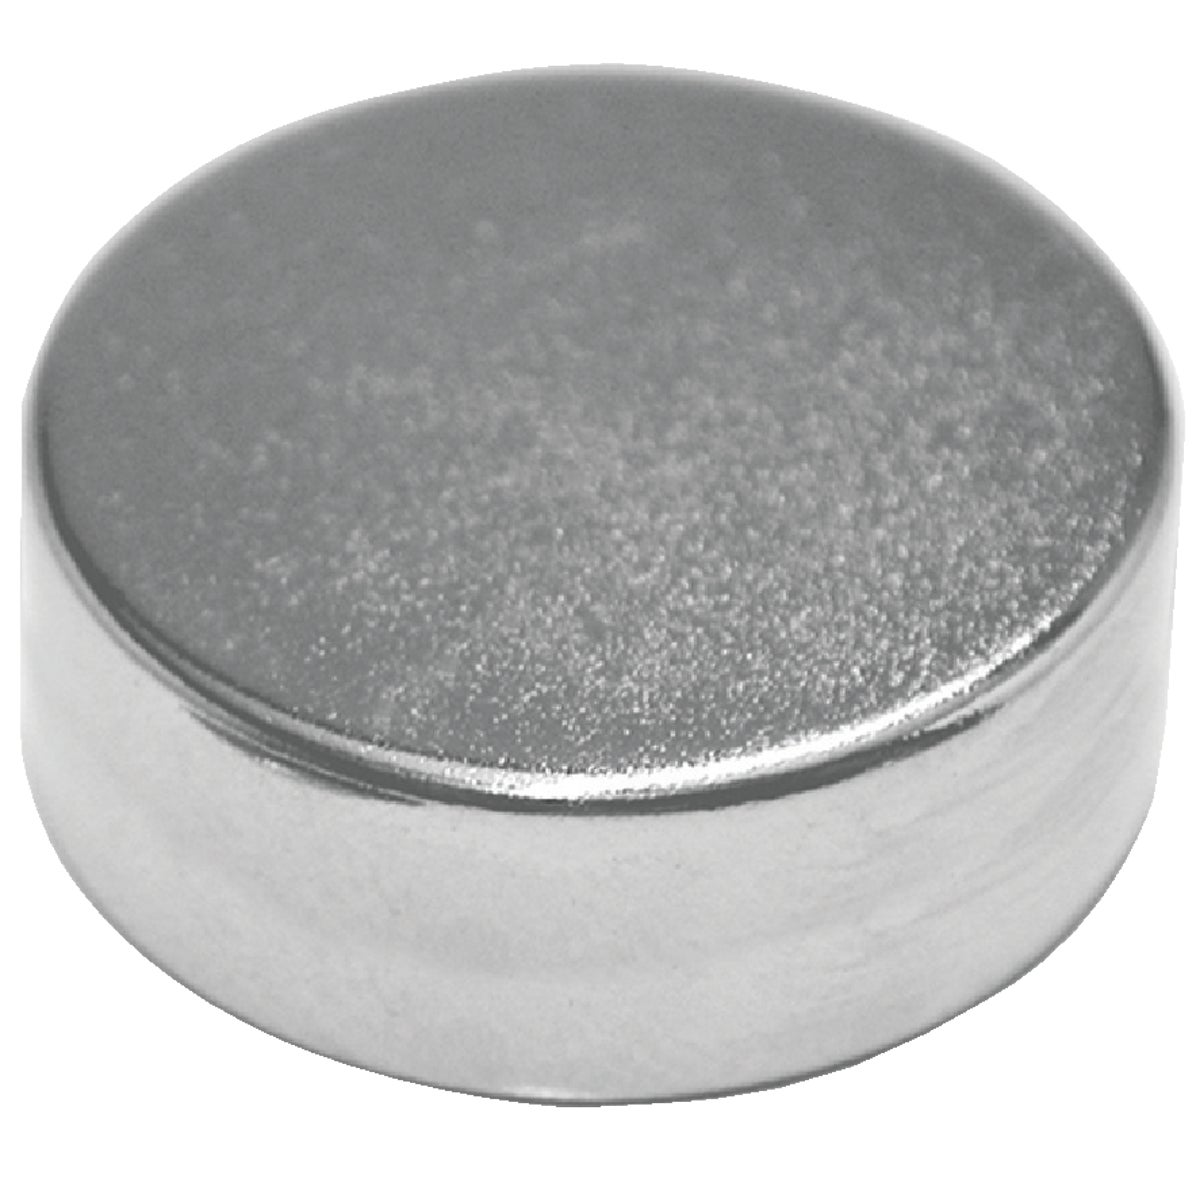 10PC NEODYMIUM MAGNET - 07045 by Master Magnetics